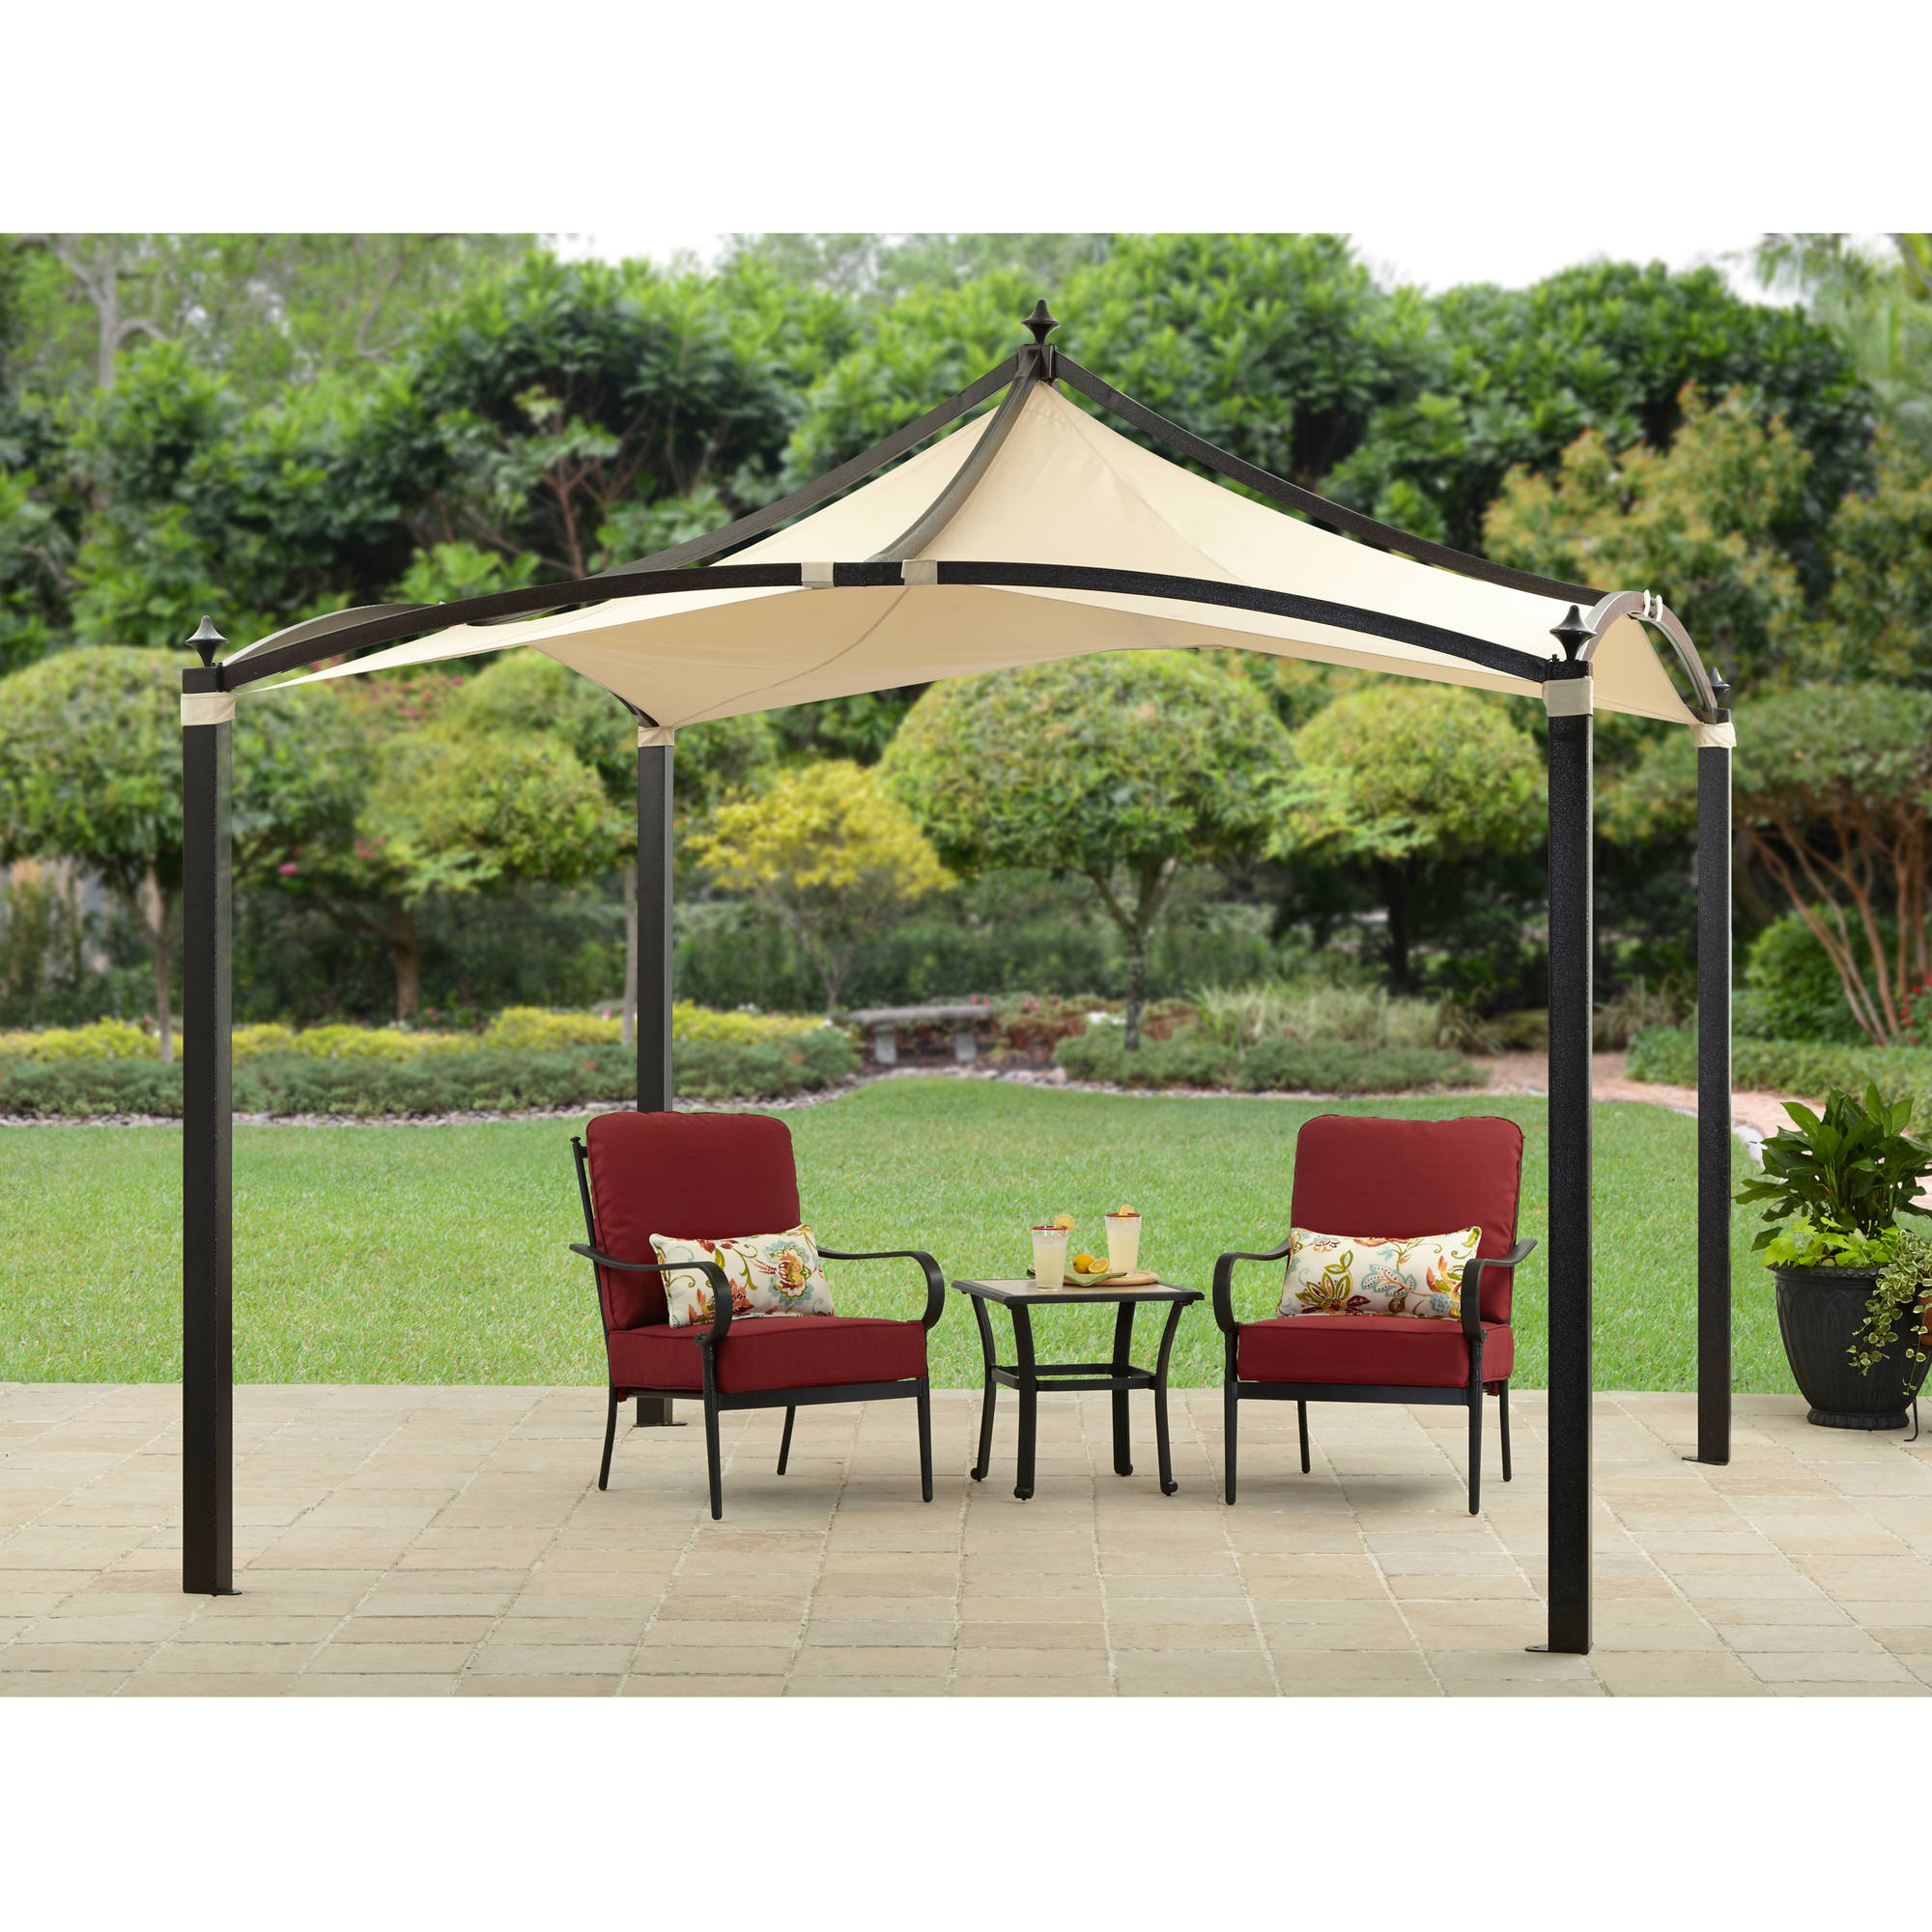 Outsunny 11u0027 Round Outdoor Patio Party Gazebo Canopy W/ Curtains   Orange    Walmart.com